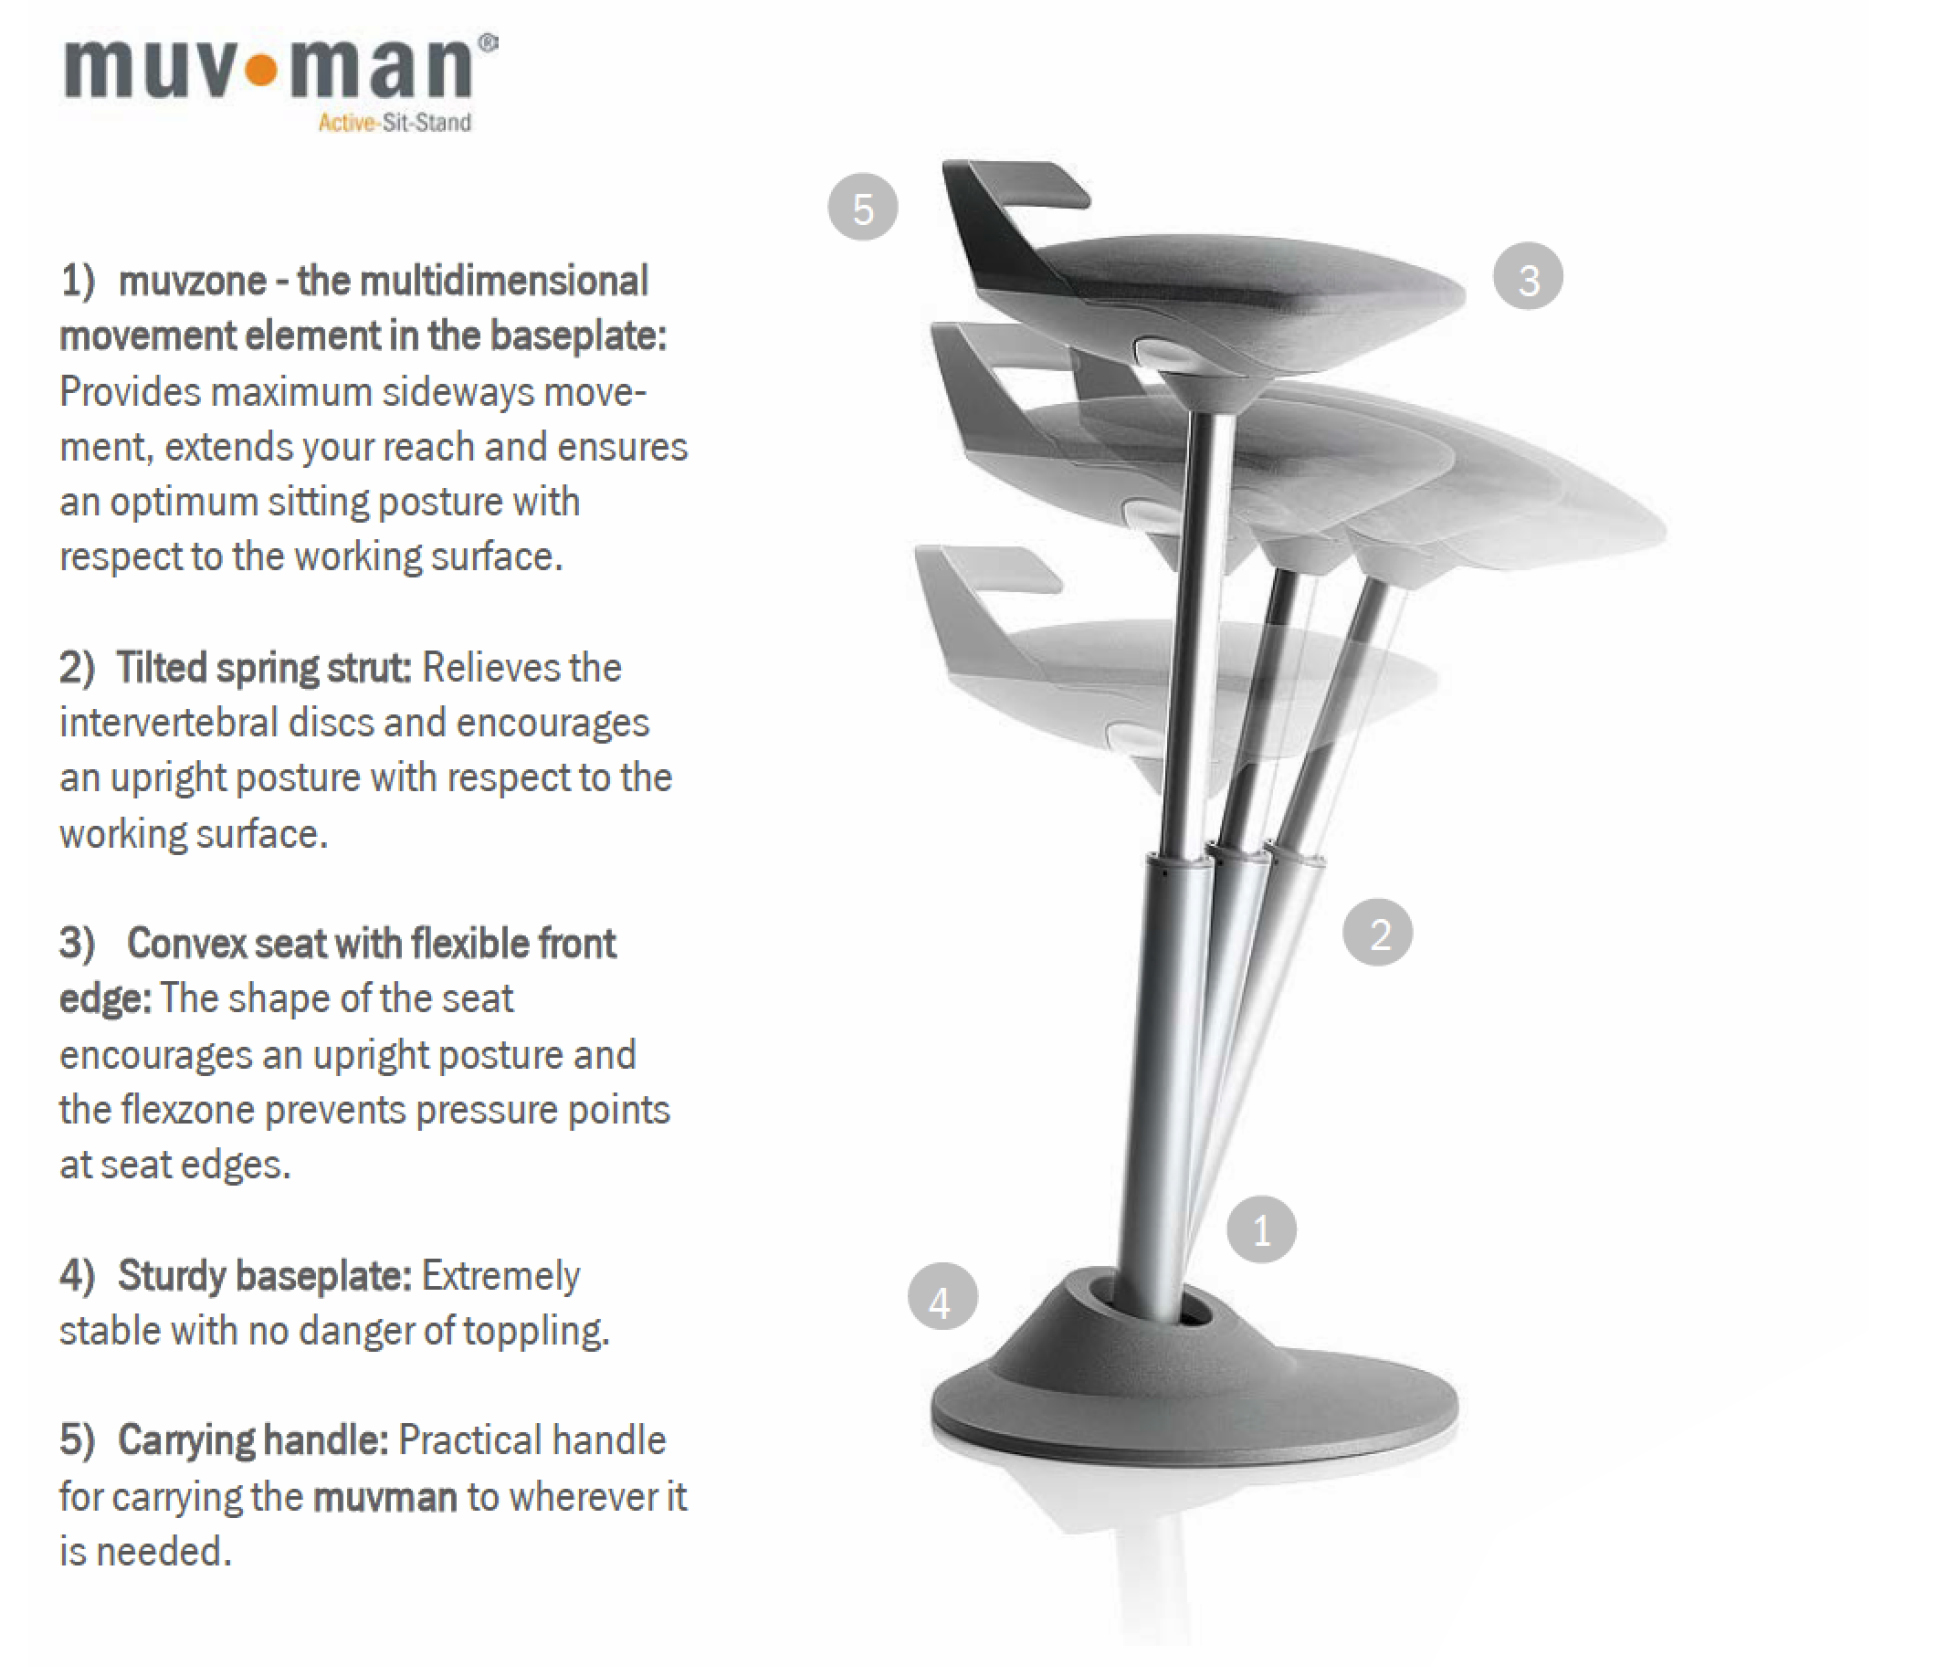 Muvman Sit Stand Stool For Sale Australia wide